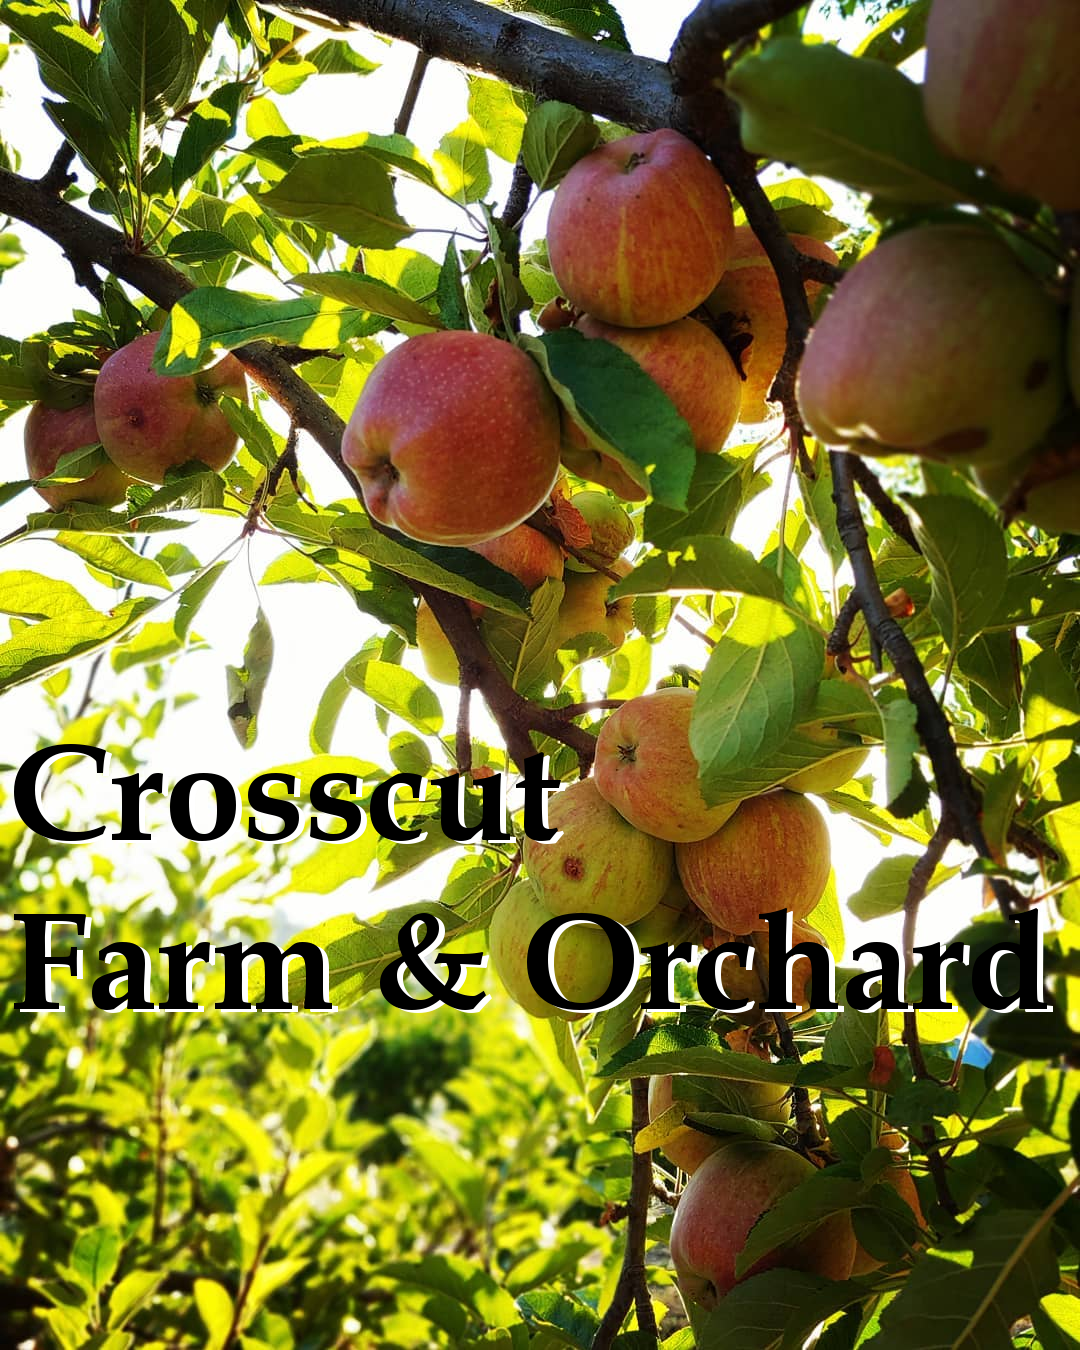 Crosscut Farm and Orchard Julian California Red Apples Photo